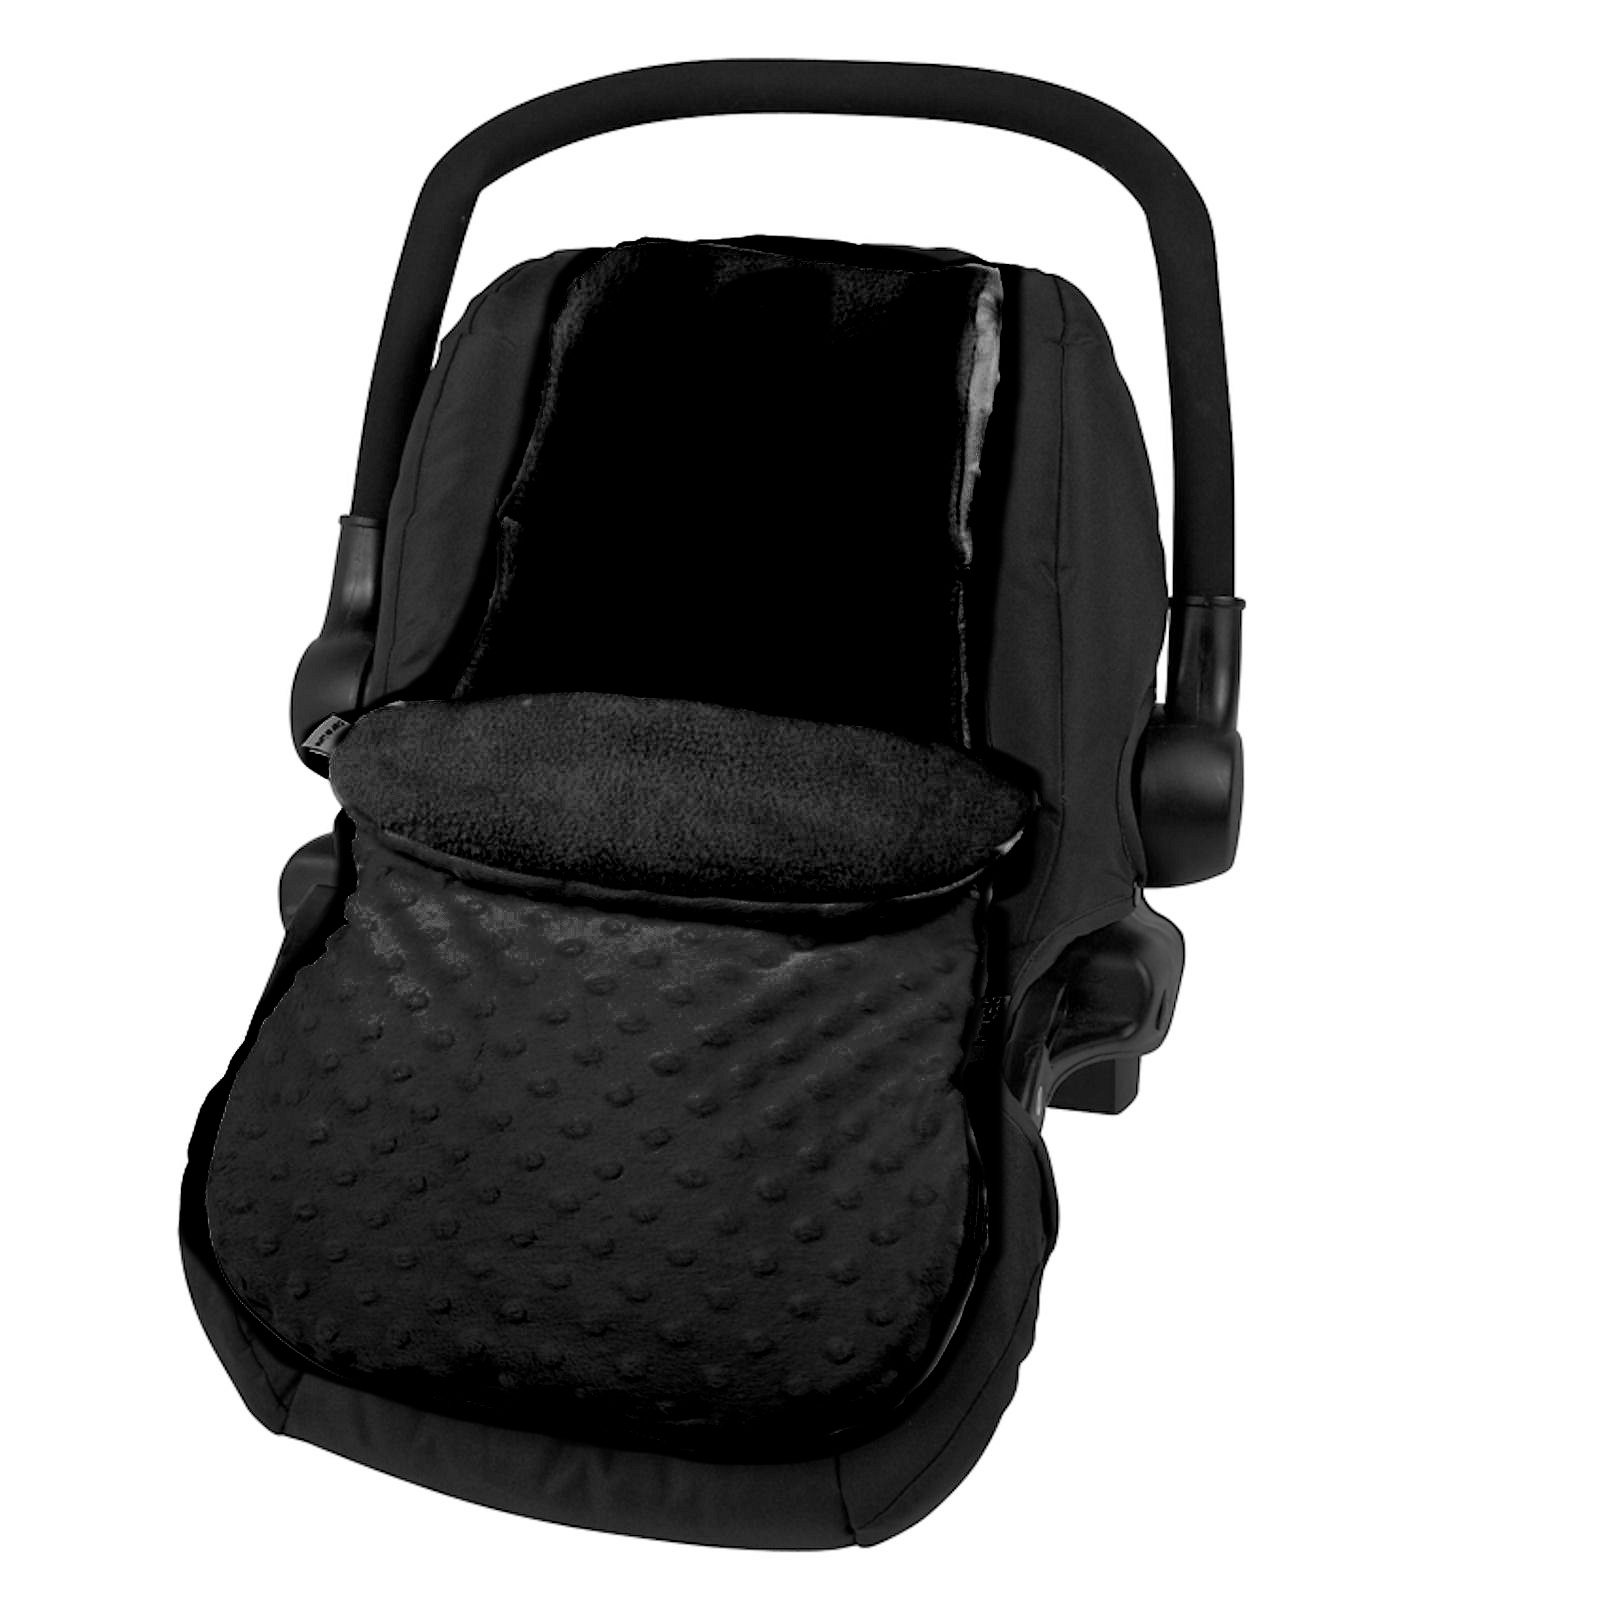 4baby Car Seat Foot - Dimple Black | Buy at Online4baby